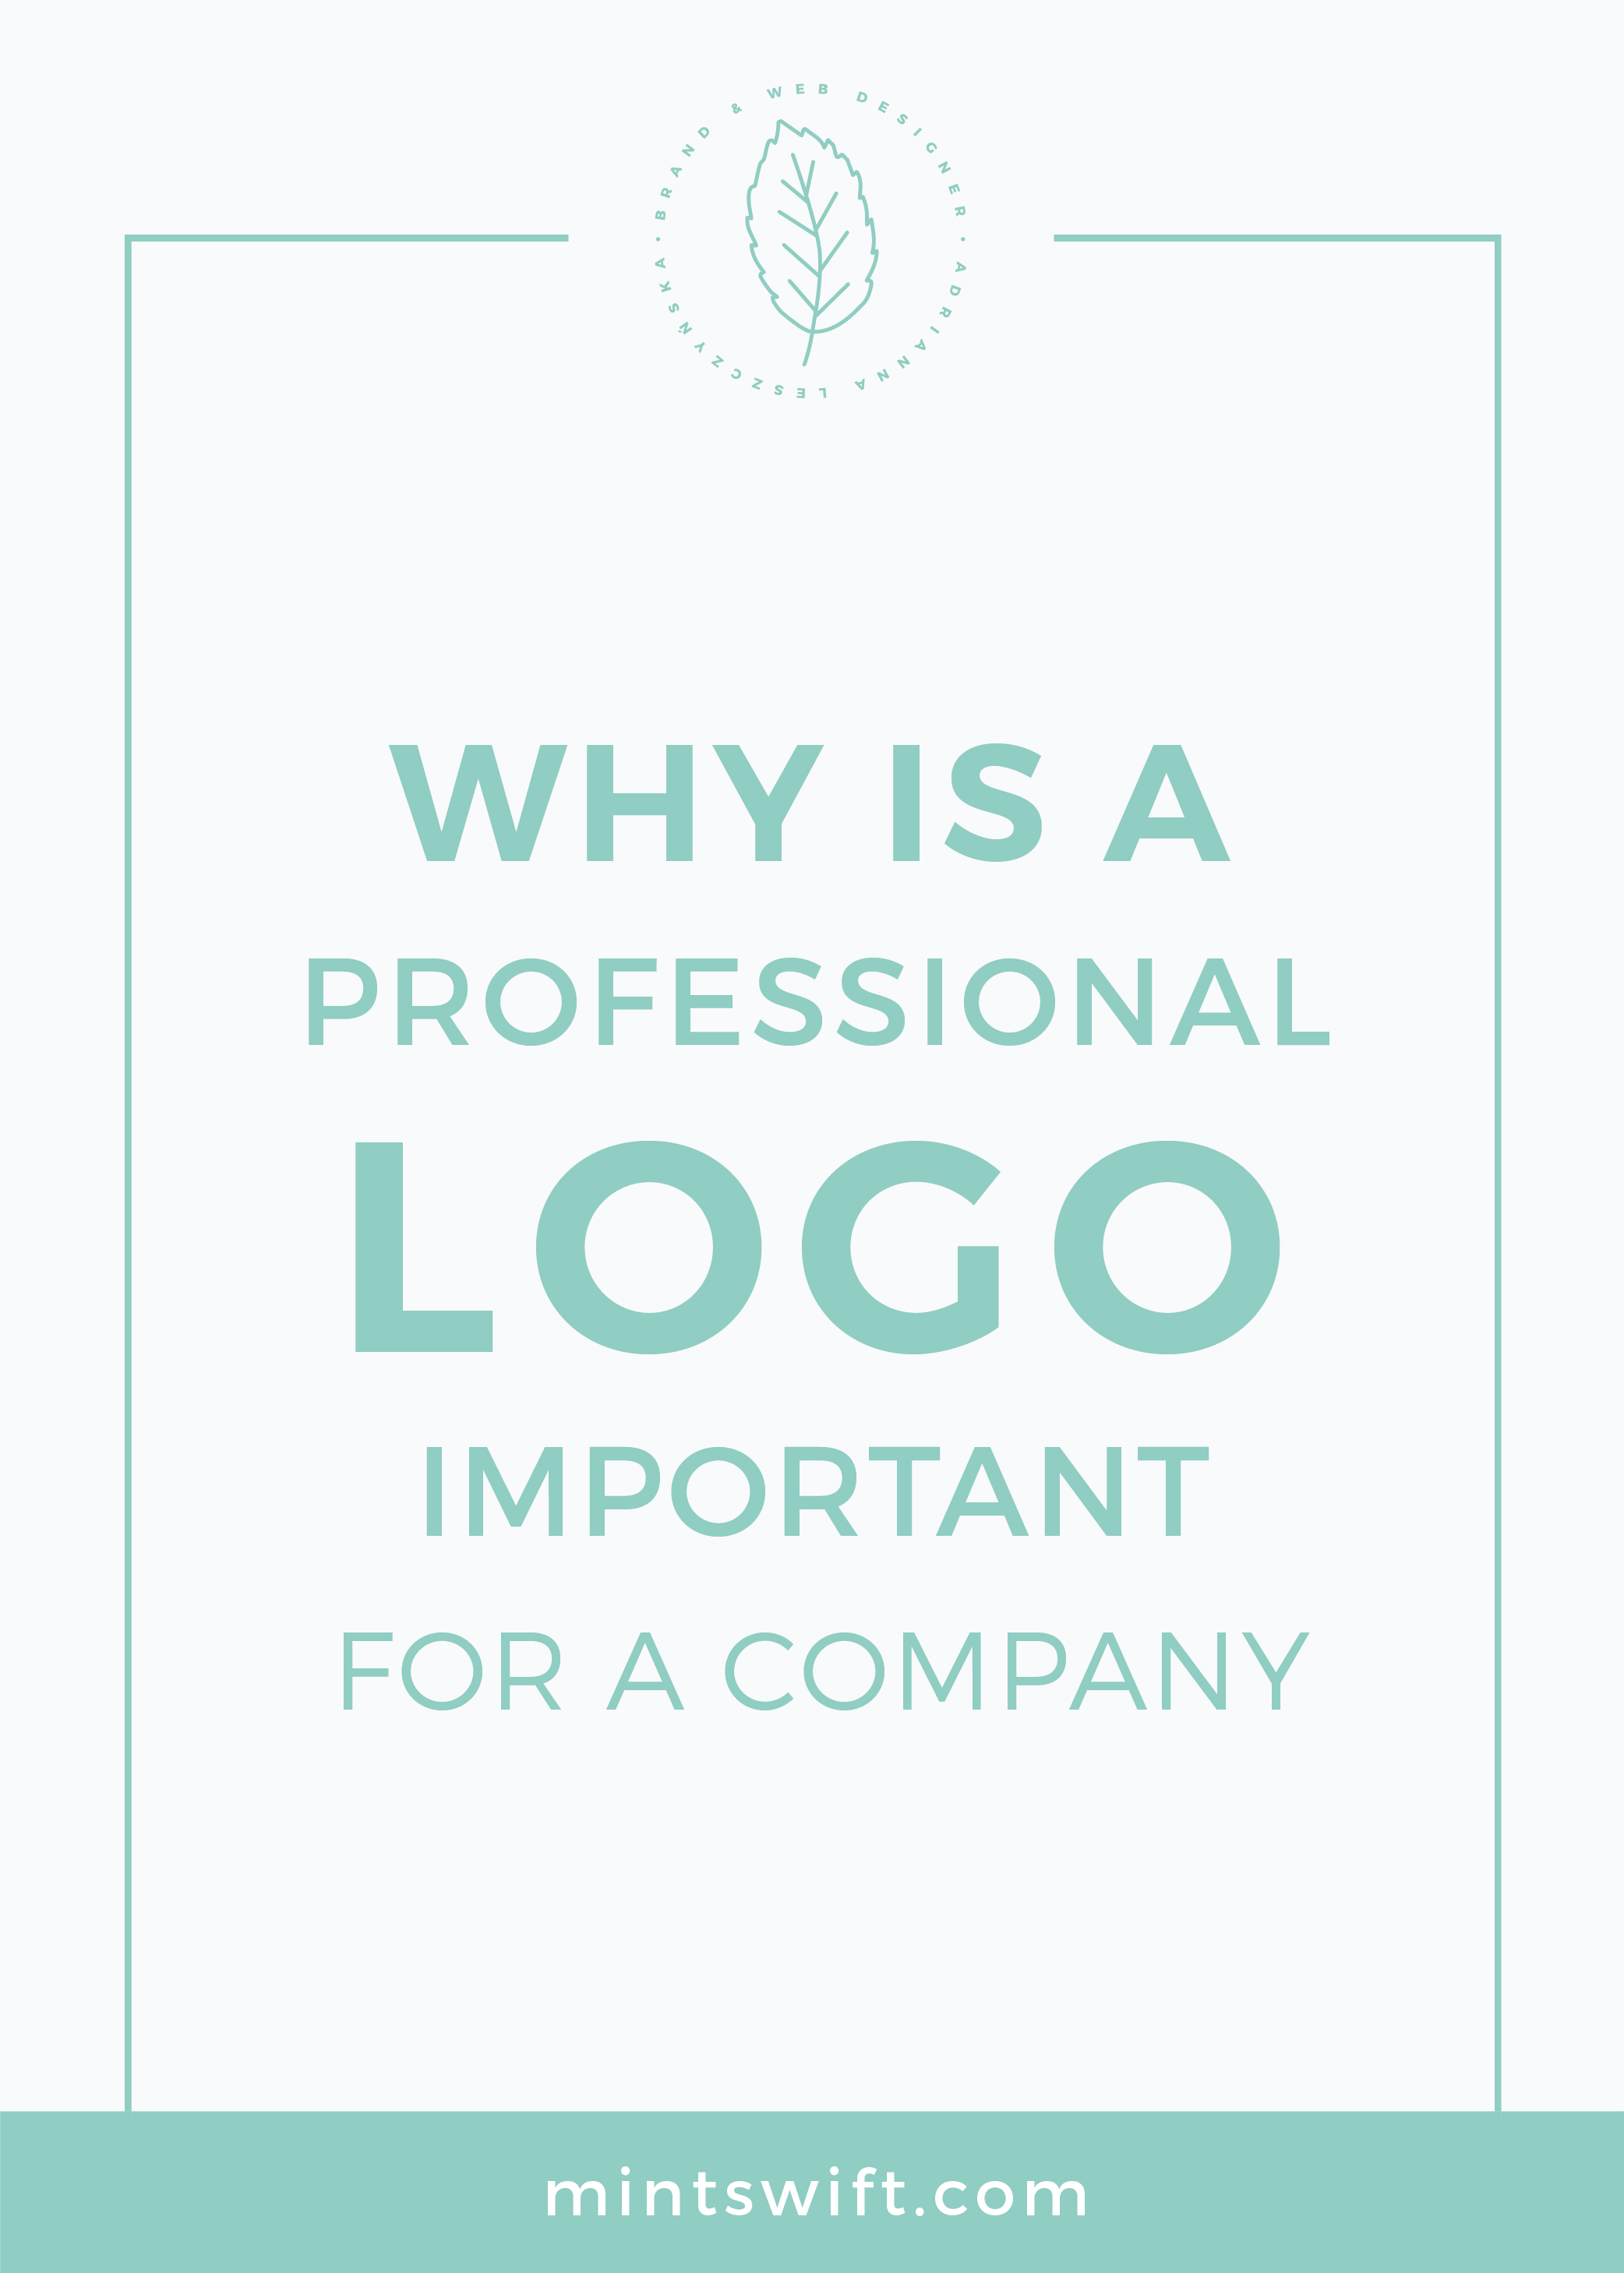 Why is a Professional Logo Important for a Company